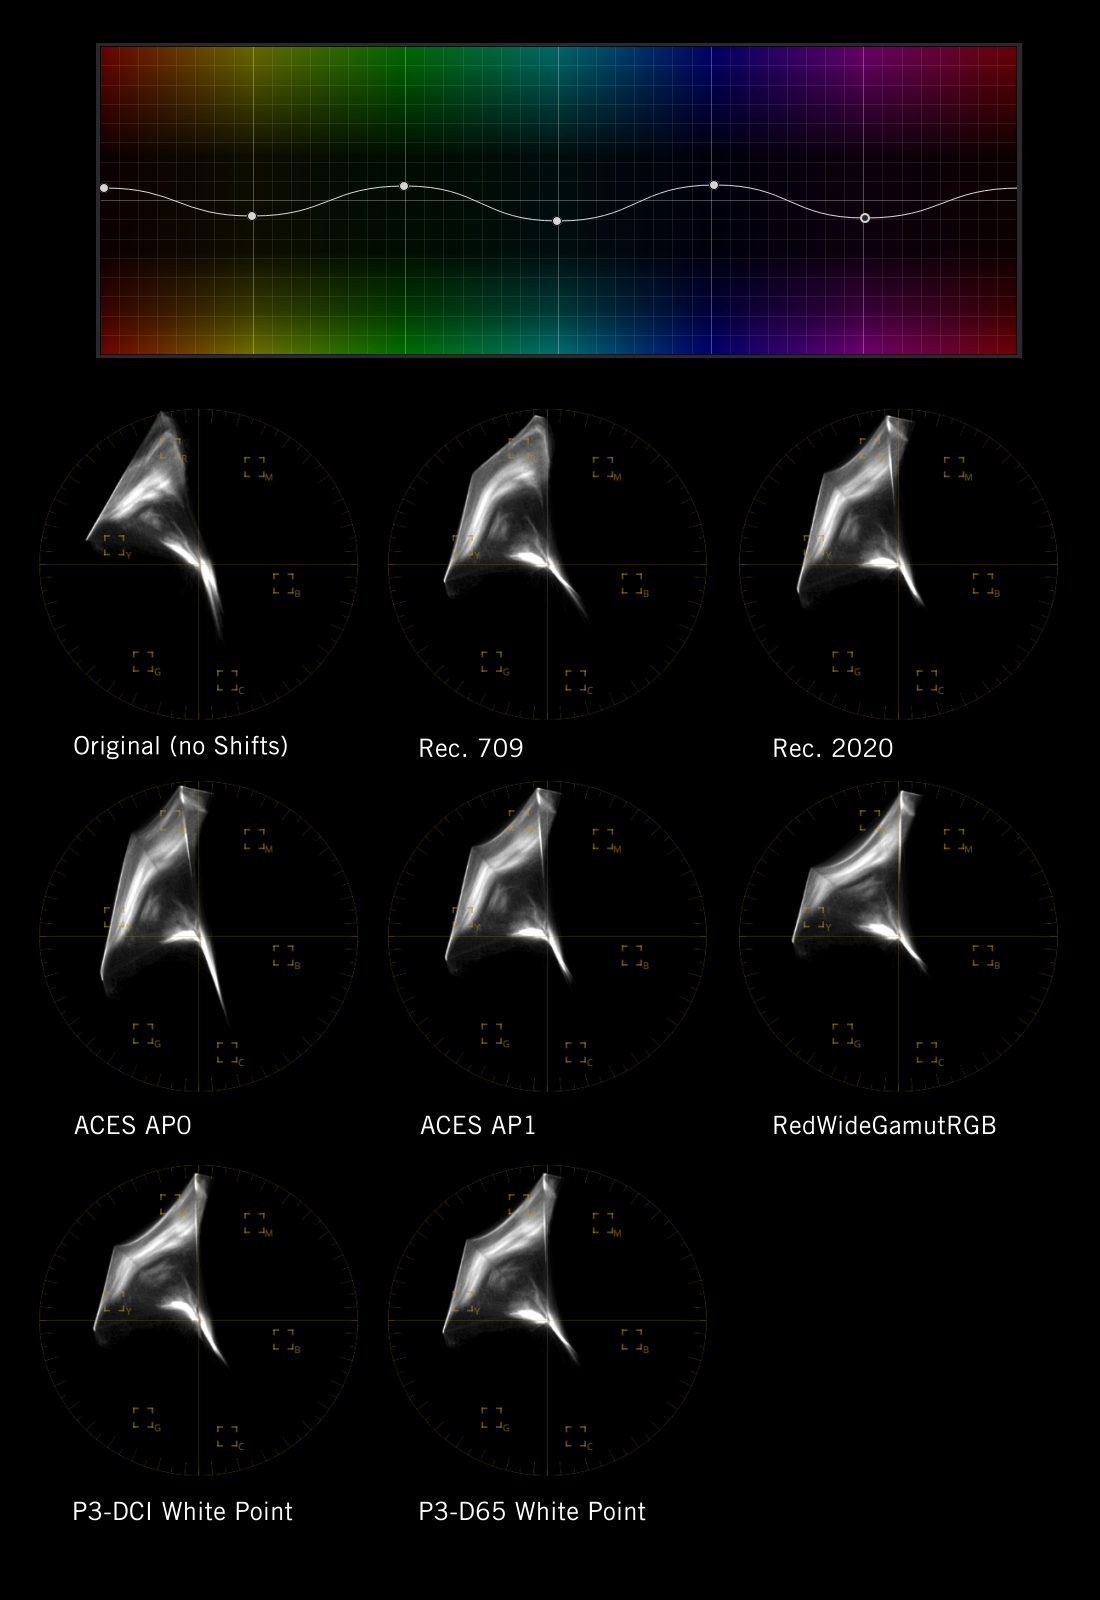 The same color transformation operation has different effects on the image. Here, I've applied the same hue adjustment curve is applied to eight different color spaces and the effects on the vec